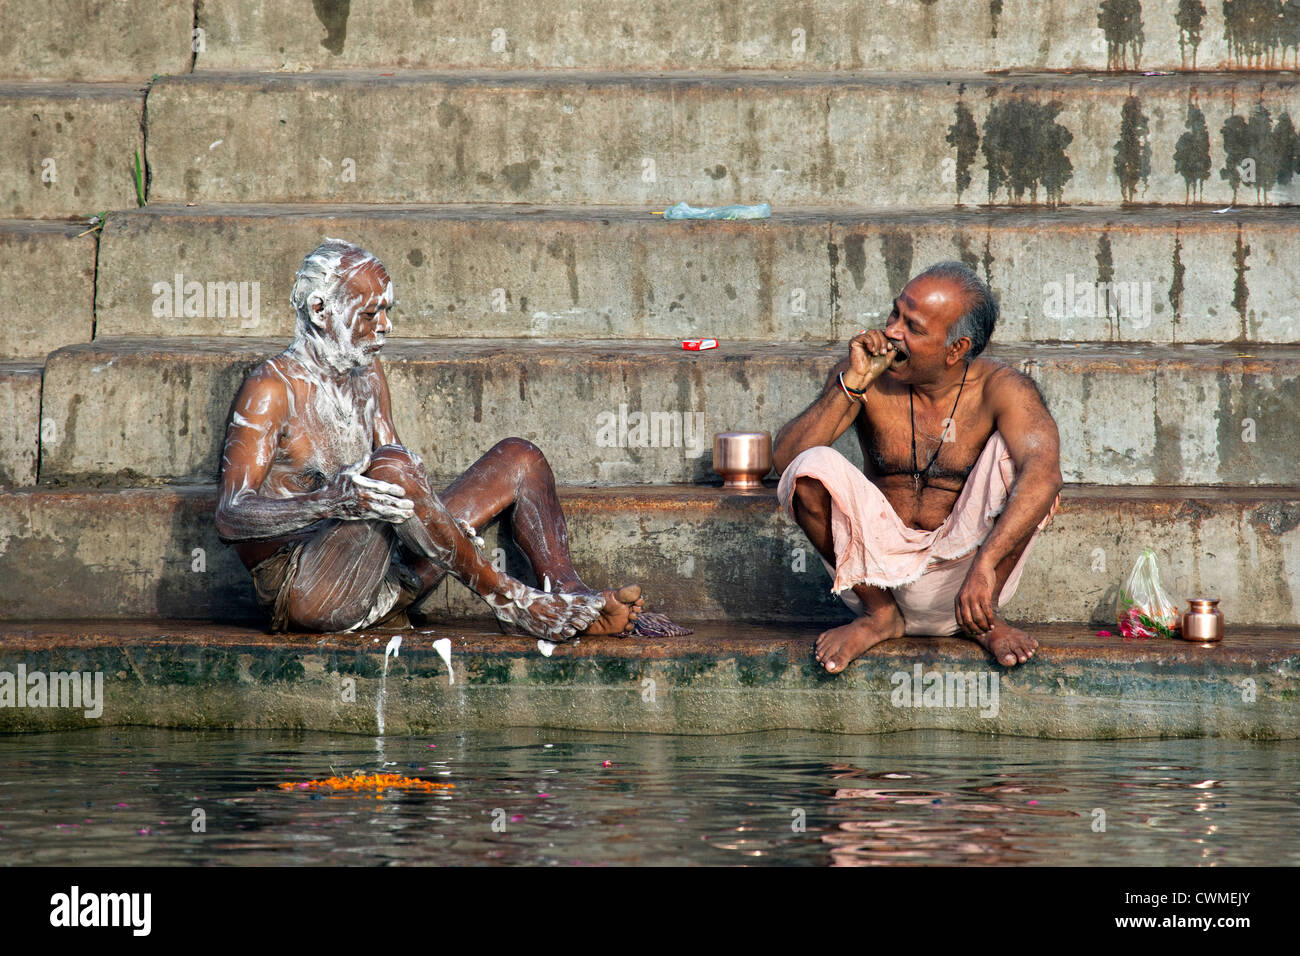 Indian men washing with soap and cleaning teeth at a ghat along the holy Ganges river, Varanasi, Uttar Pradesh, - Stock Image